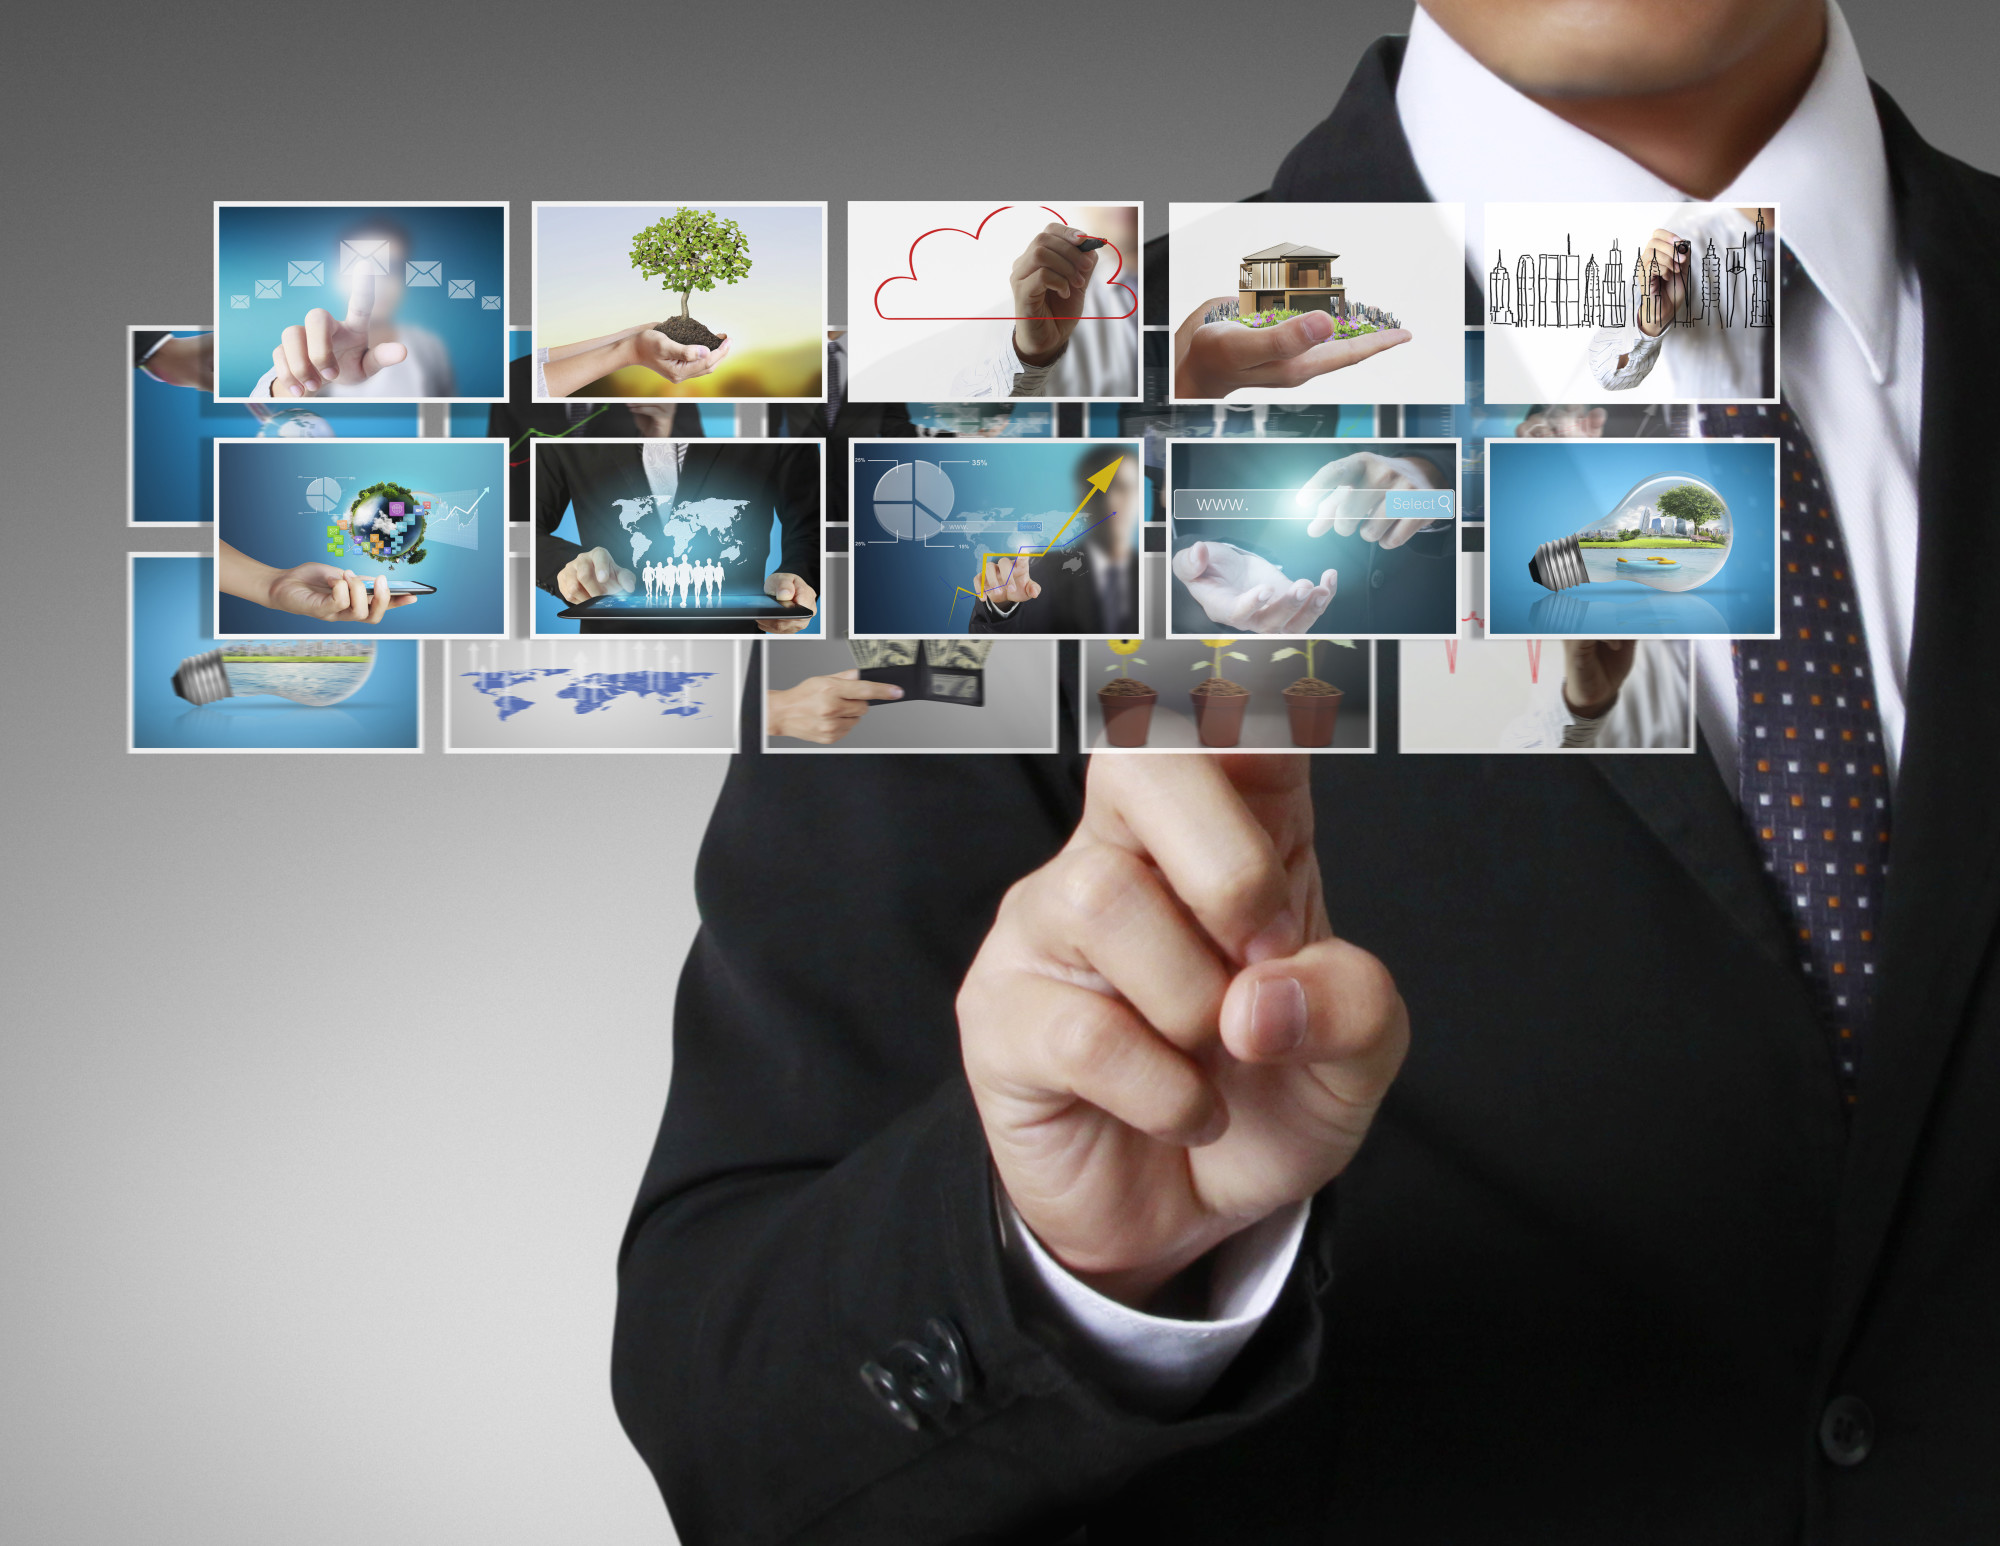 5 Tips on Optimizing Image Quality for Your Website